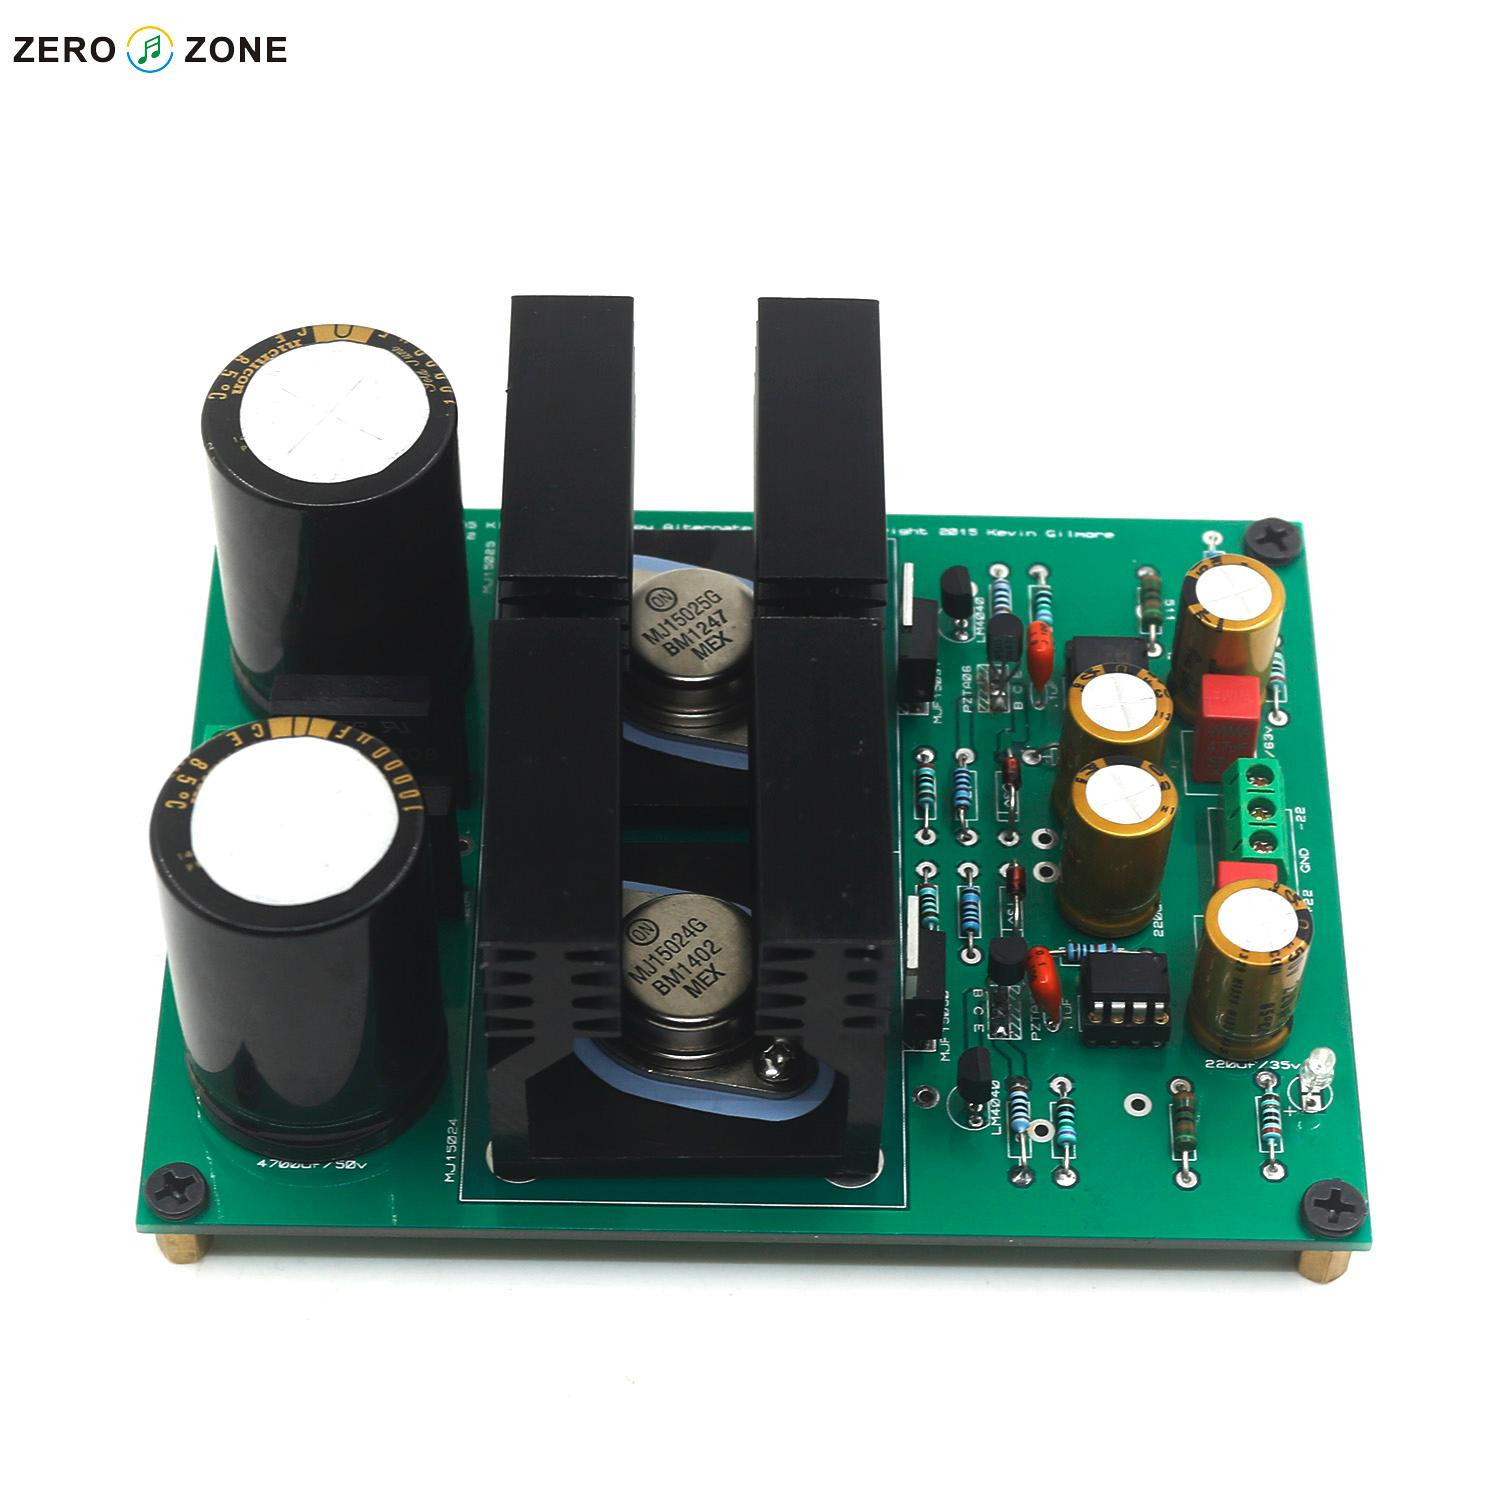 Best ideas about DIY Headphone Amp Kit . Save or Pin KG version KSA5 headphone and kit preamp kit DIY headphone Now.